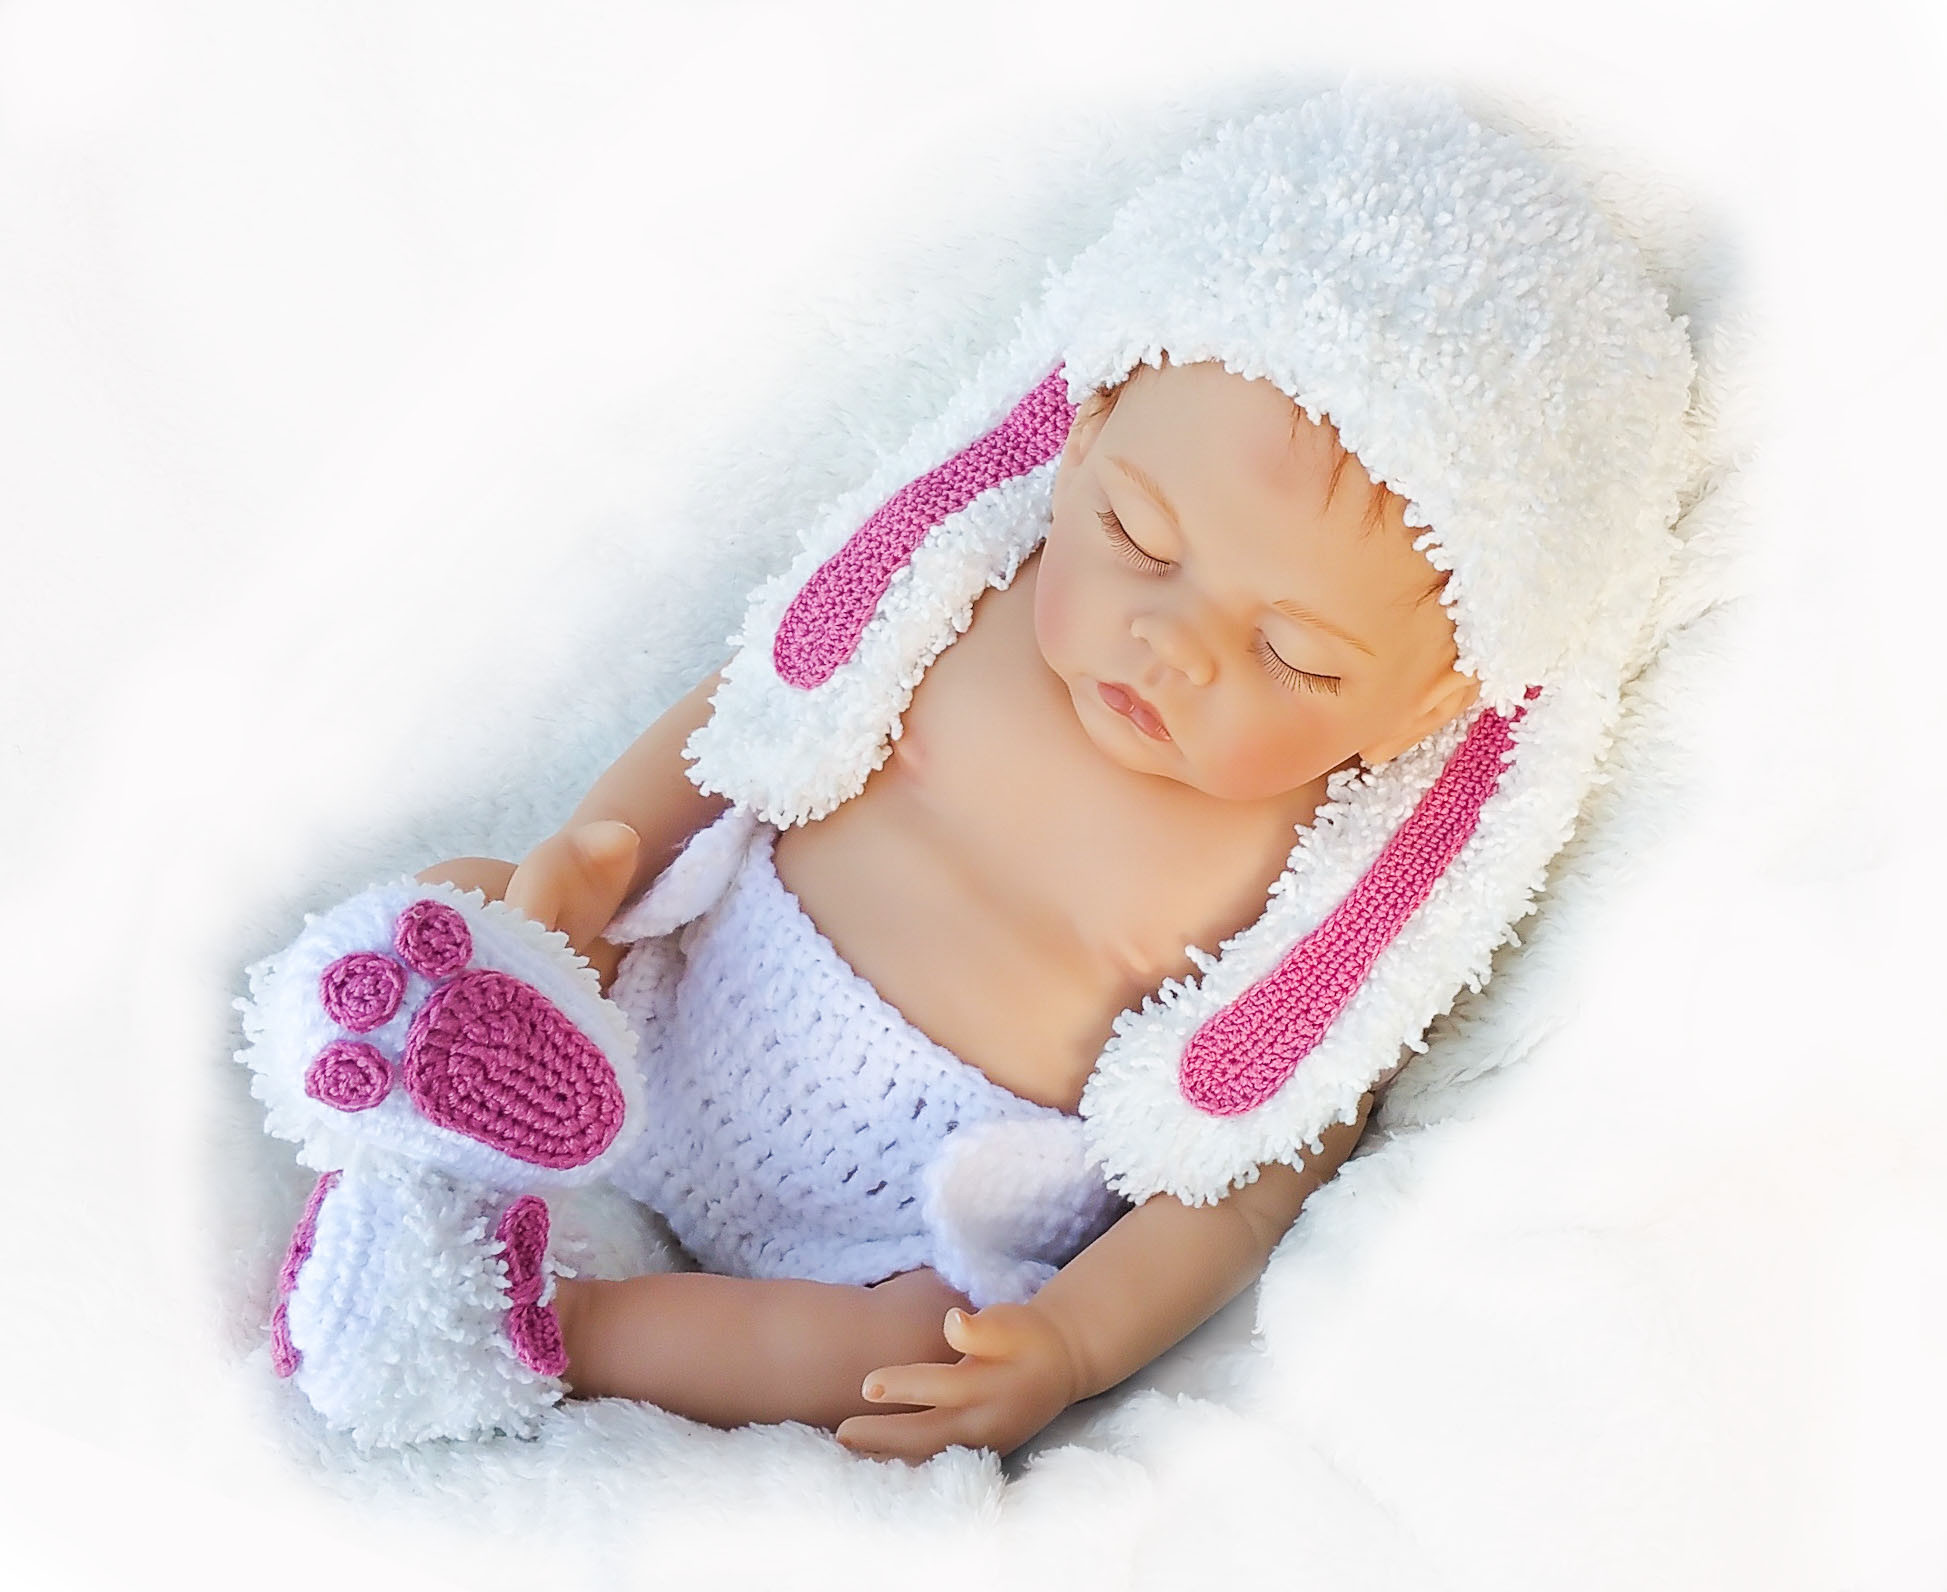 Awesome Baby Easter Bunny Baby Prop Baby Bunny Costume Baby Crochet Baby Costumes Of Incredible 41 Models Crochet Baby Costumes